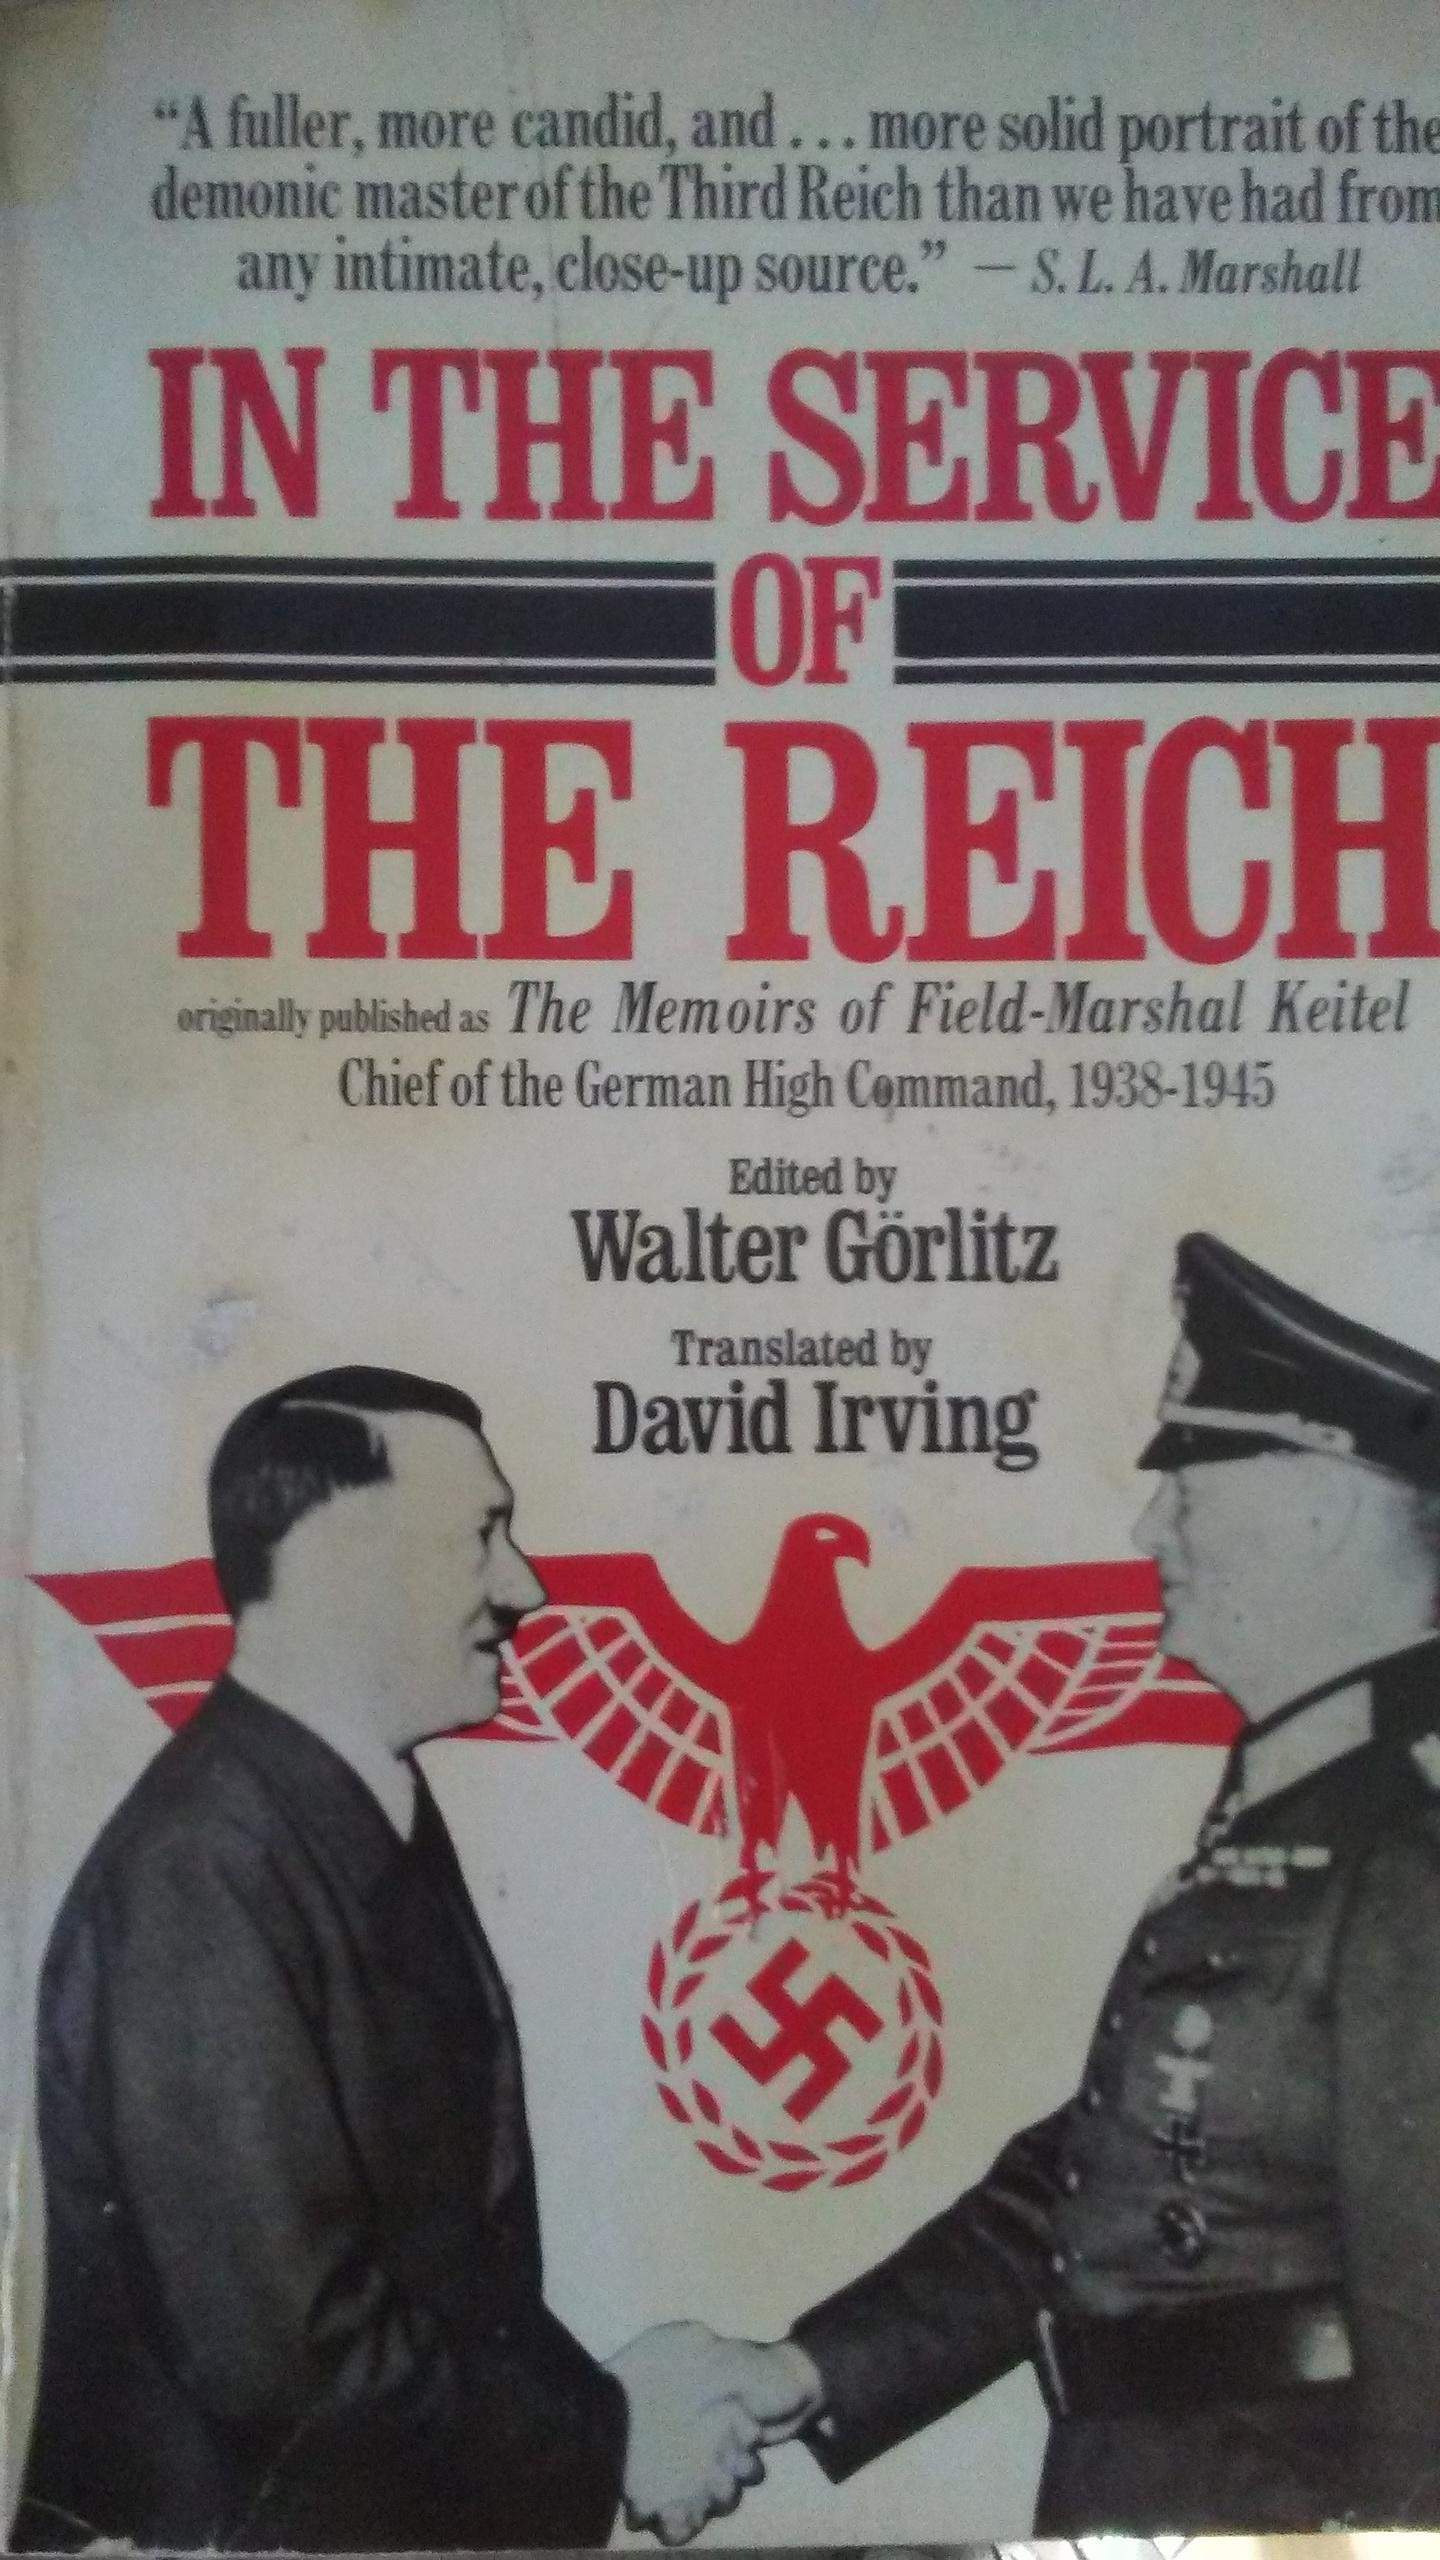 In the Service of the Reich